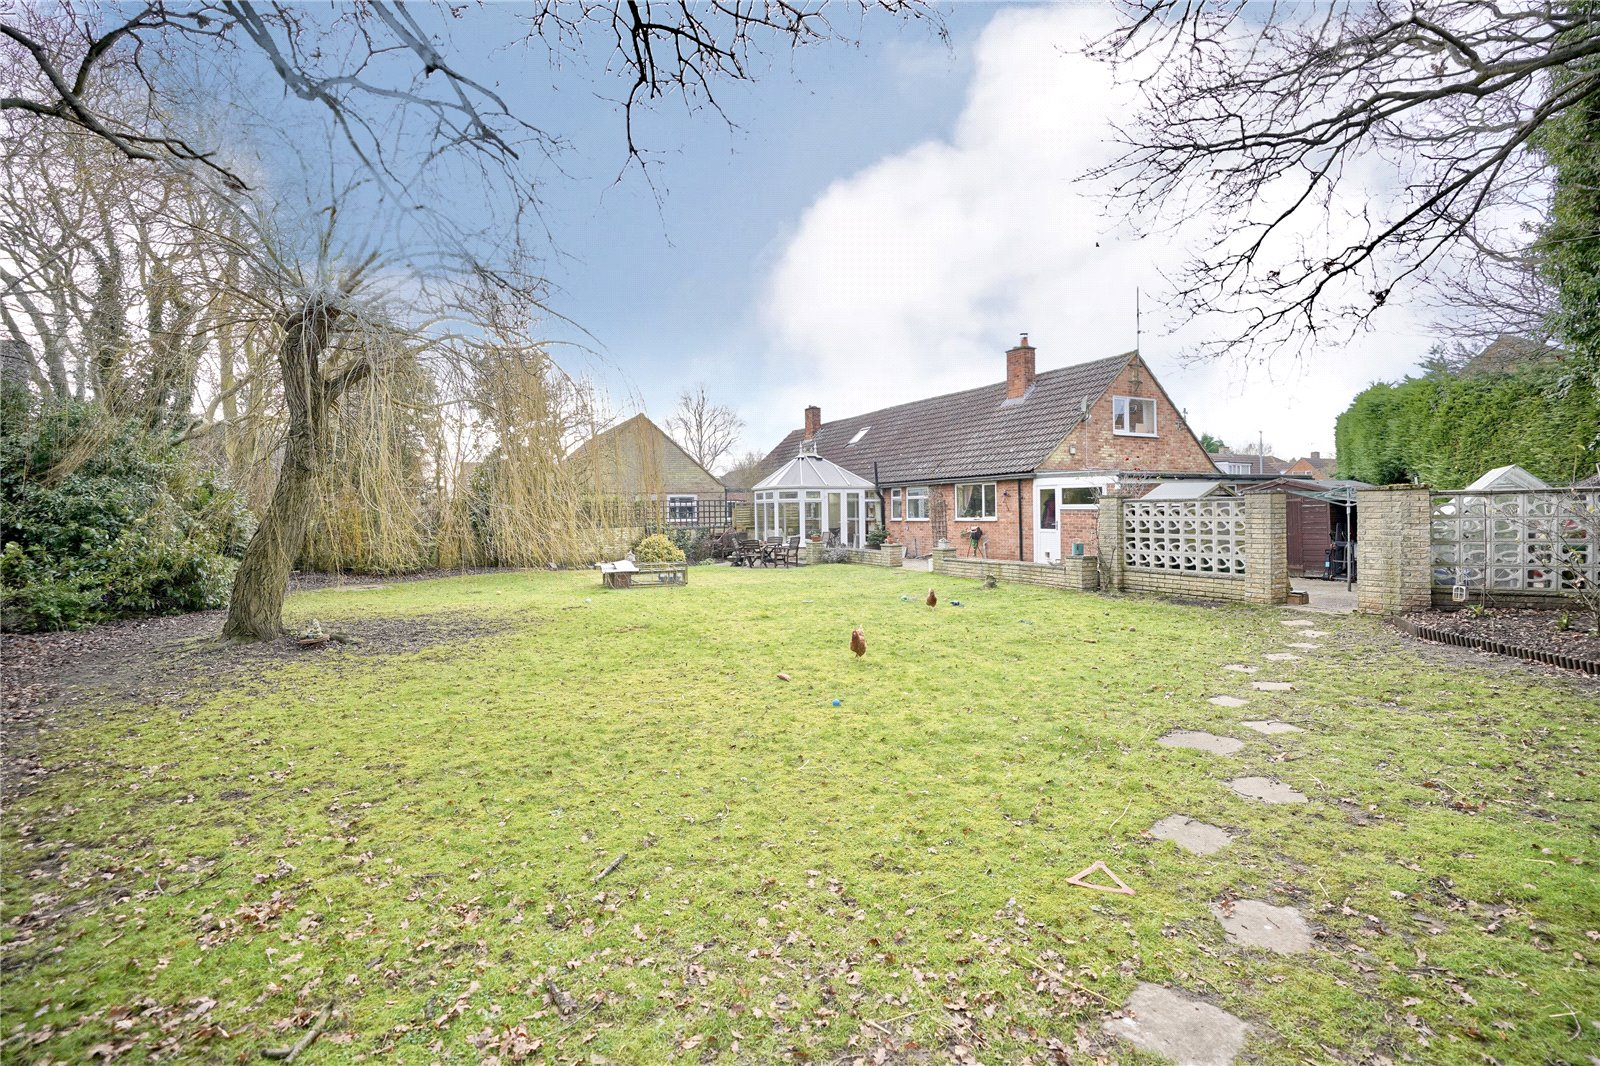 3 bed house for sale in Hemingford Grey, PE28 9BS  - Property Image 1